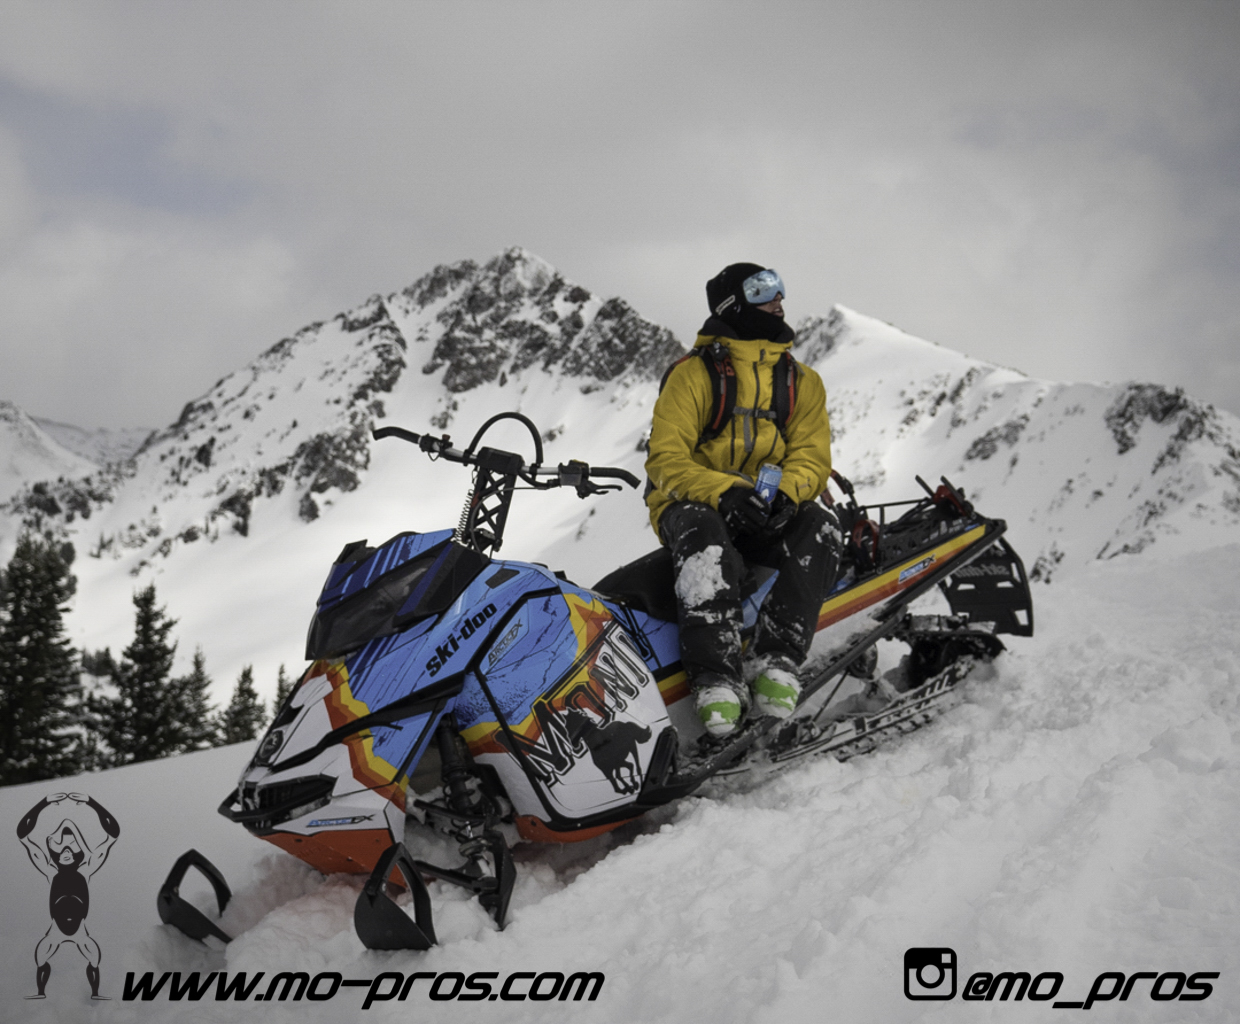 92_Tsaina Rack_Timbersled rack_Timbersled Rack_timbersled bag_snowmobile bag_Snowmobile_Snowboarding_Snowboard rack_snowboard_Snowbike_Ski_Rack_LinQ Snowboard Ski_Gun Rack_Gear_gas Rack_Cheetah Facto.jpg